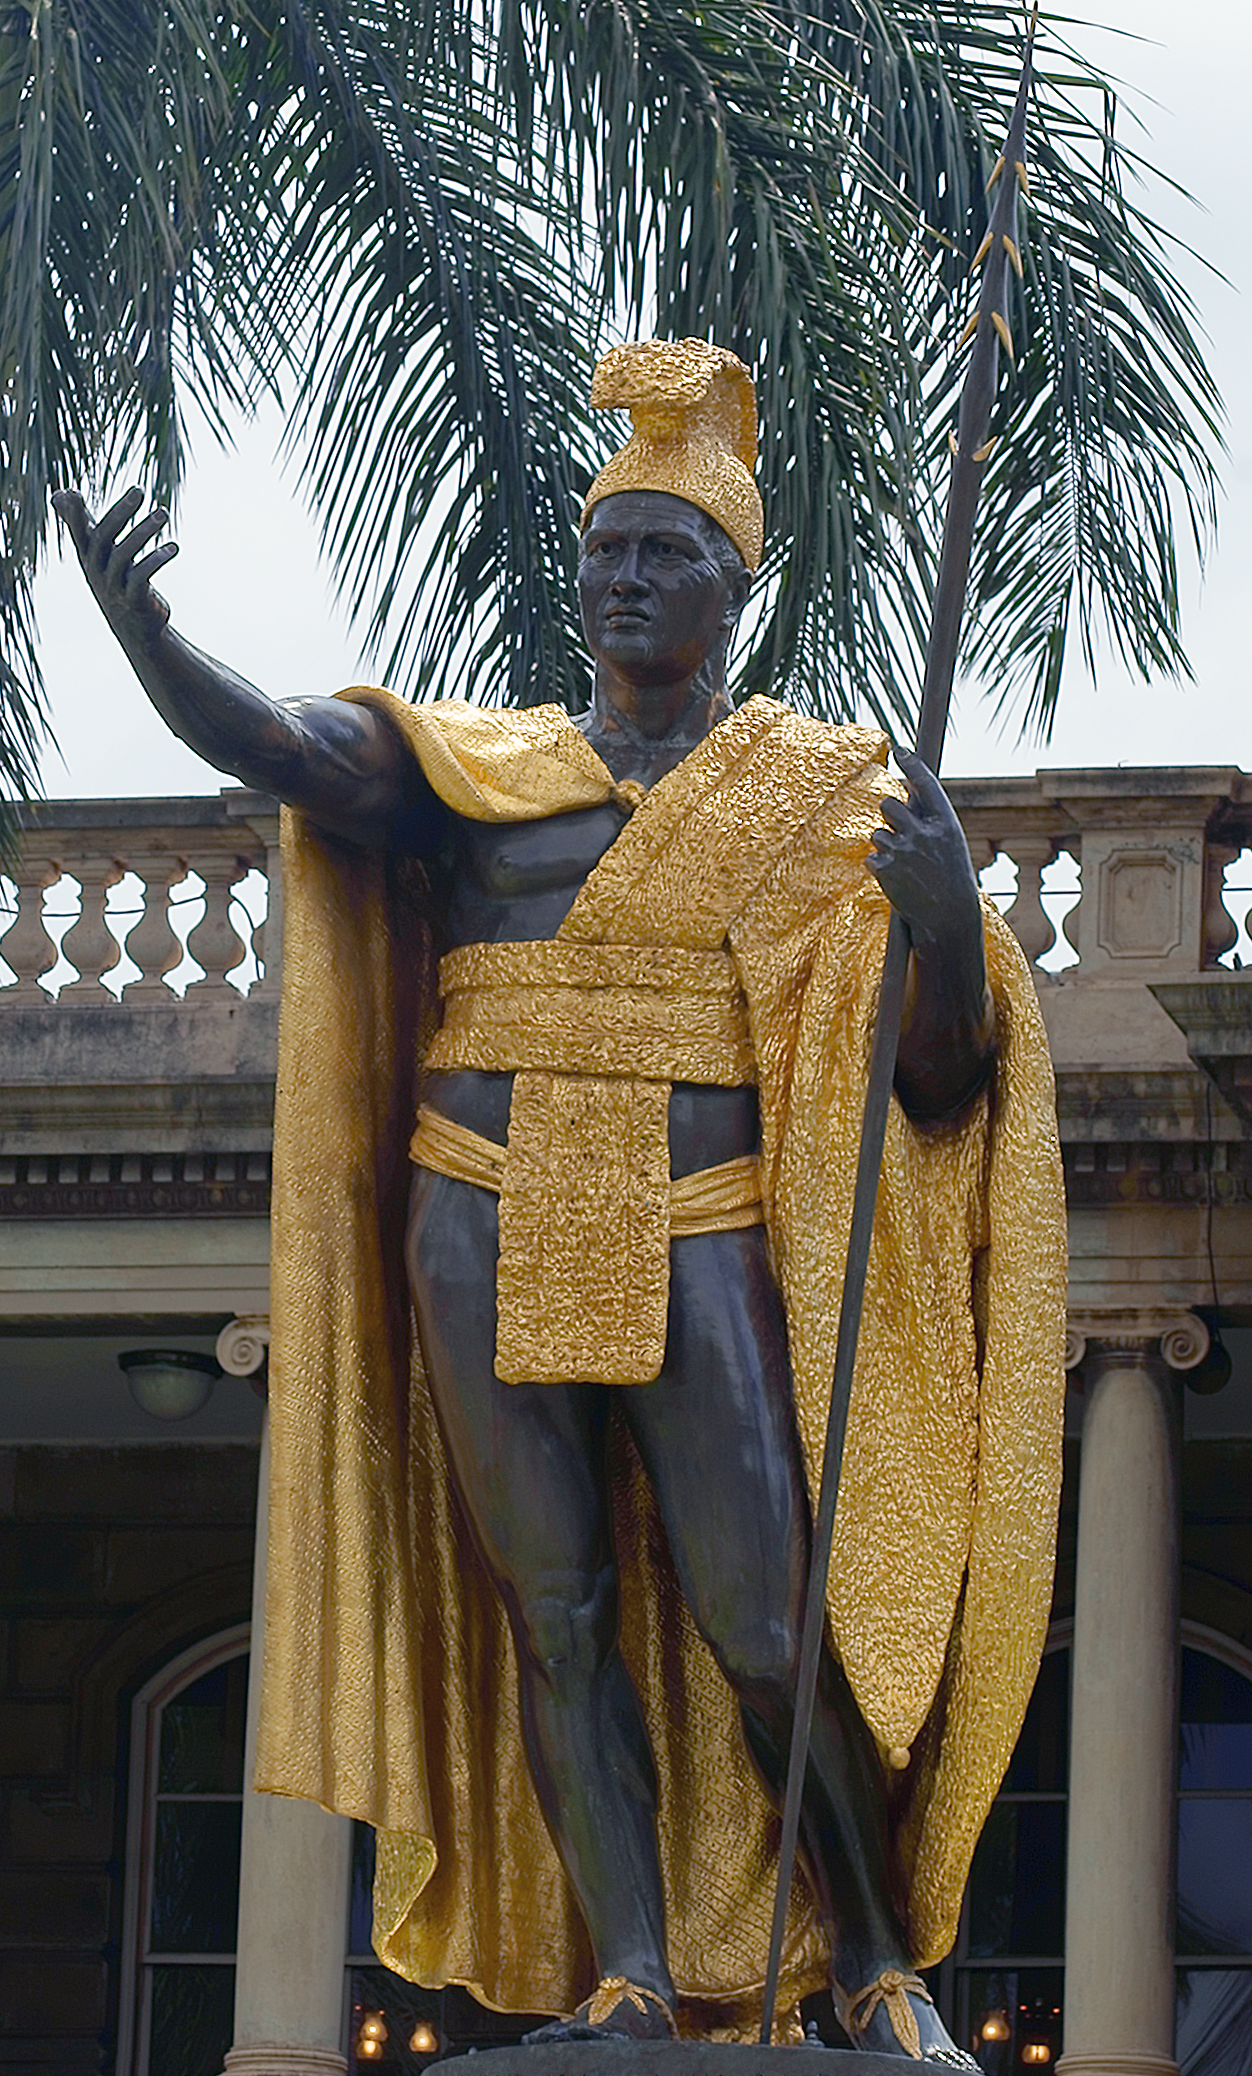 kamehameha a man to unite and rule over all of the hawaiian islands Kamehameha united the islands and established himself as a supreme ruler by keeping the other chiefs close to him at all times, and redistributing their lands on several islands, he ensured that no rebellions could occur.